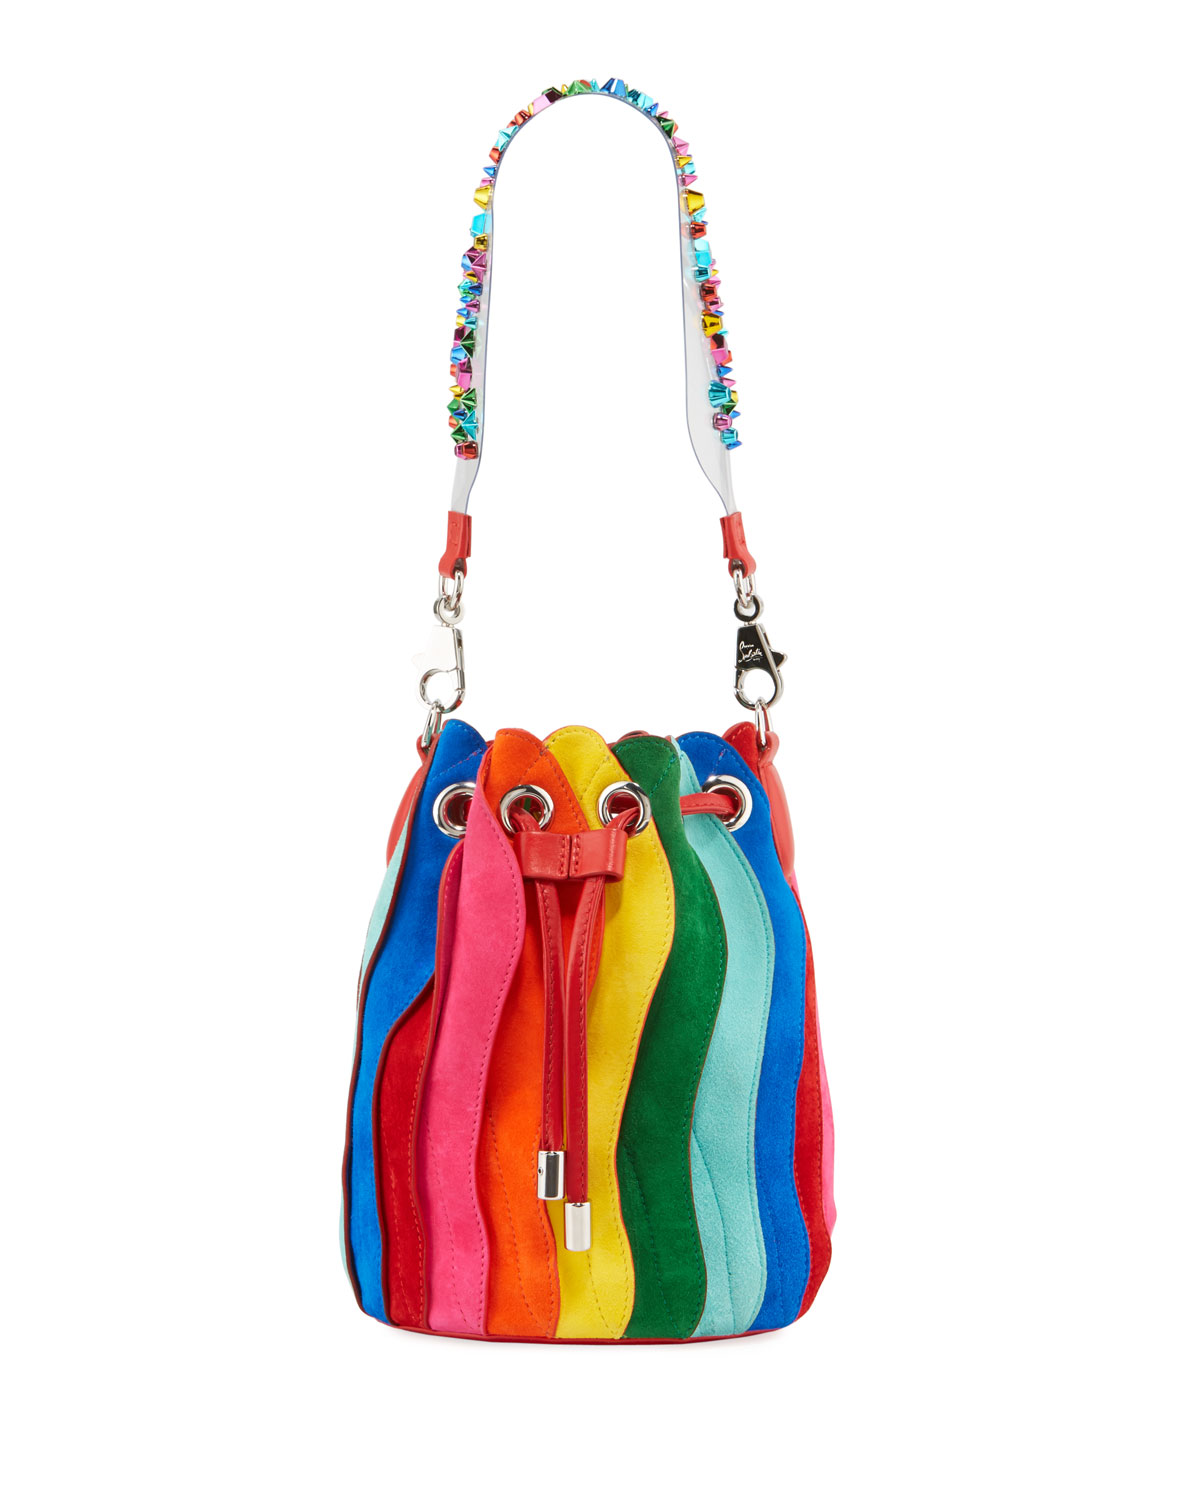 Marie Jane Rainbow Suede Bucket Bag by Christian Louboutin